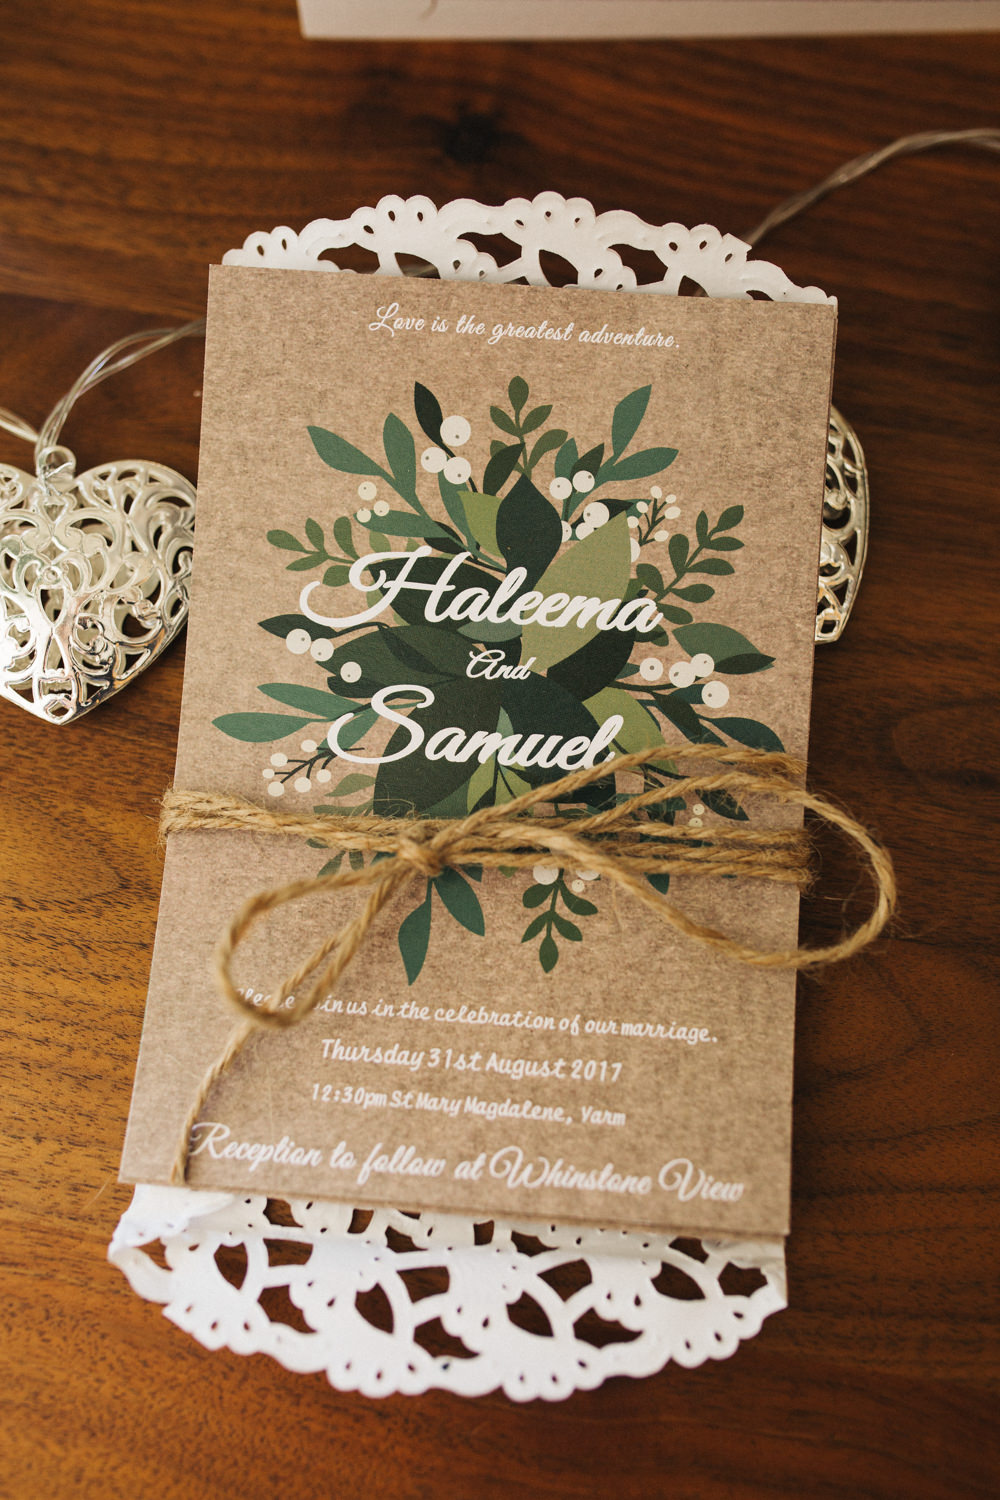 Kraft Brown Paper Stationery Invite Invitation Greenery Twine Doily Wray's Barn Whinstone View Wedding Sally T Photography